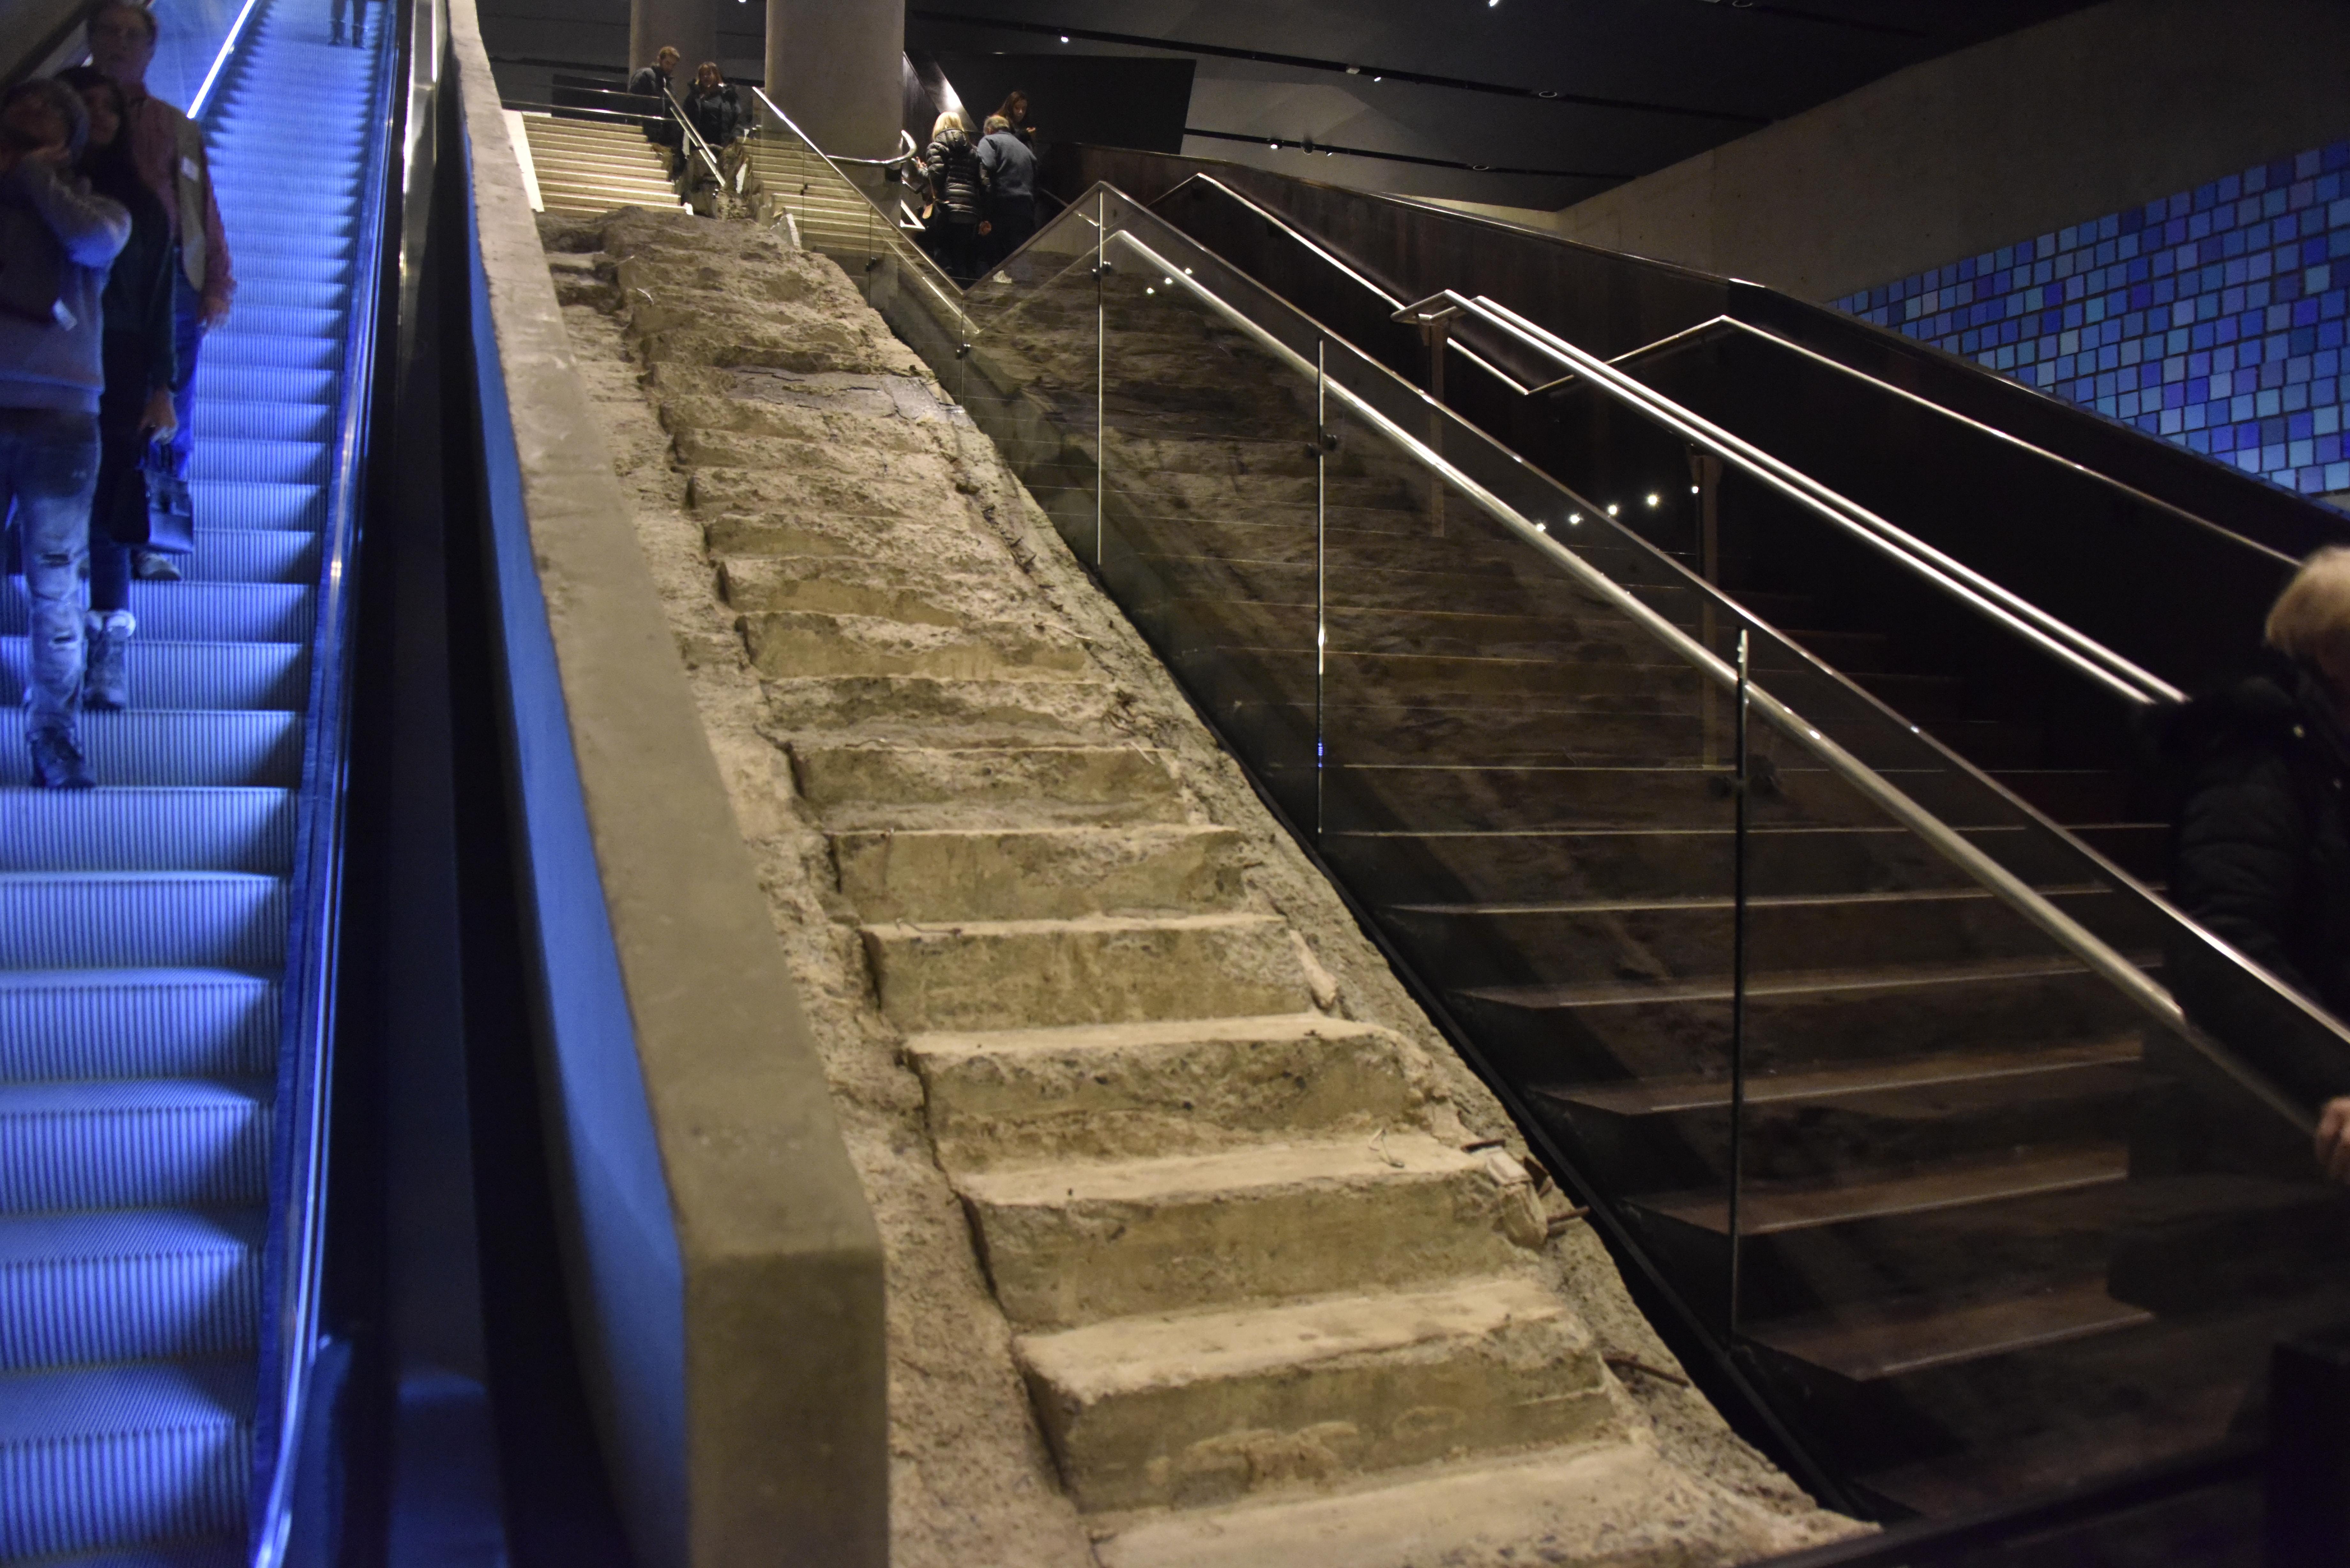 'Survivor Stairs,' next to escalators at 9-11 Memorial &amp;amp; Museum.{&amp;nbsp;}{&amp;nbsp;}Randy Beamer/News 4 San Antonio Photo.<p></p>